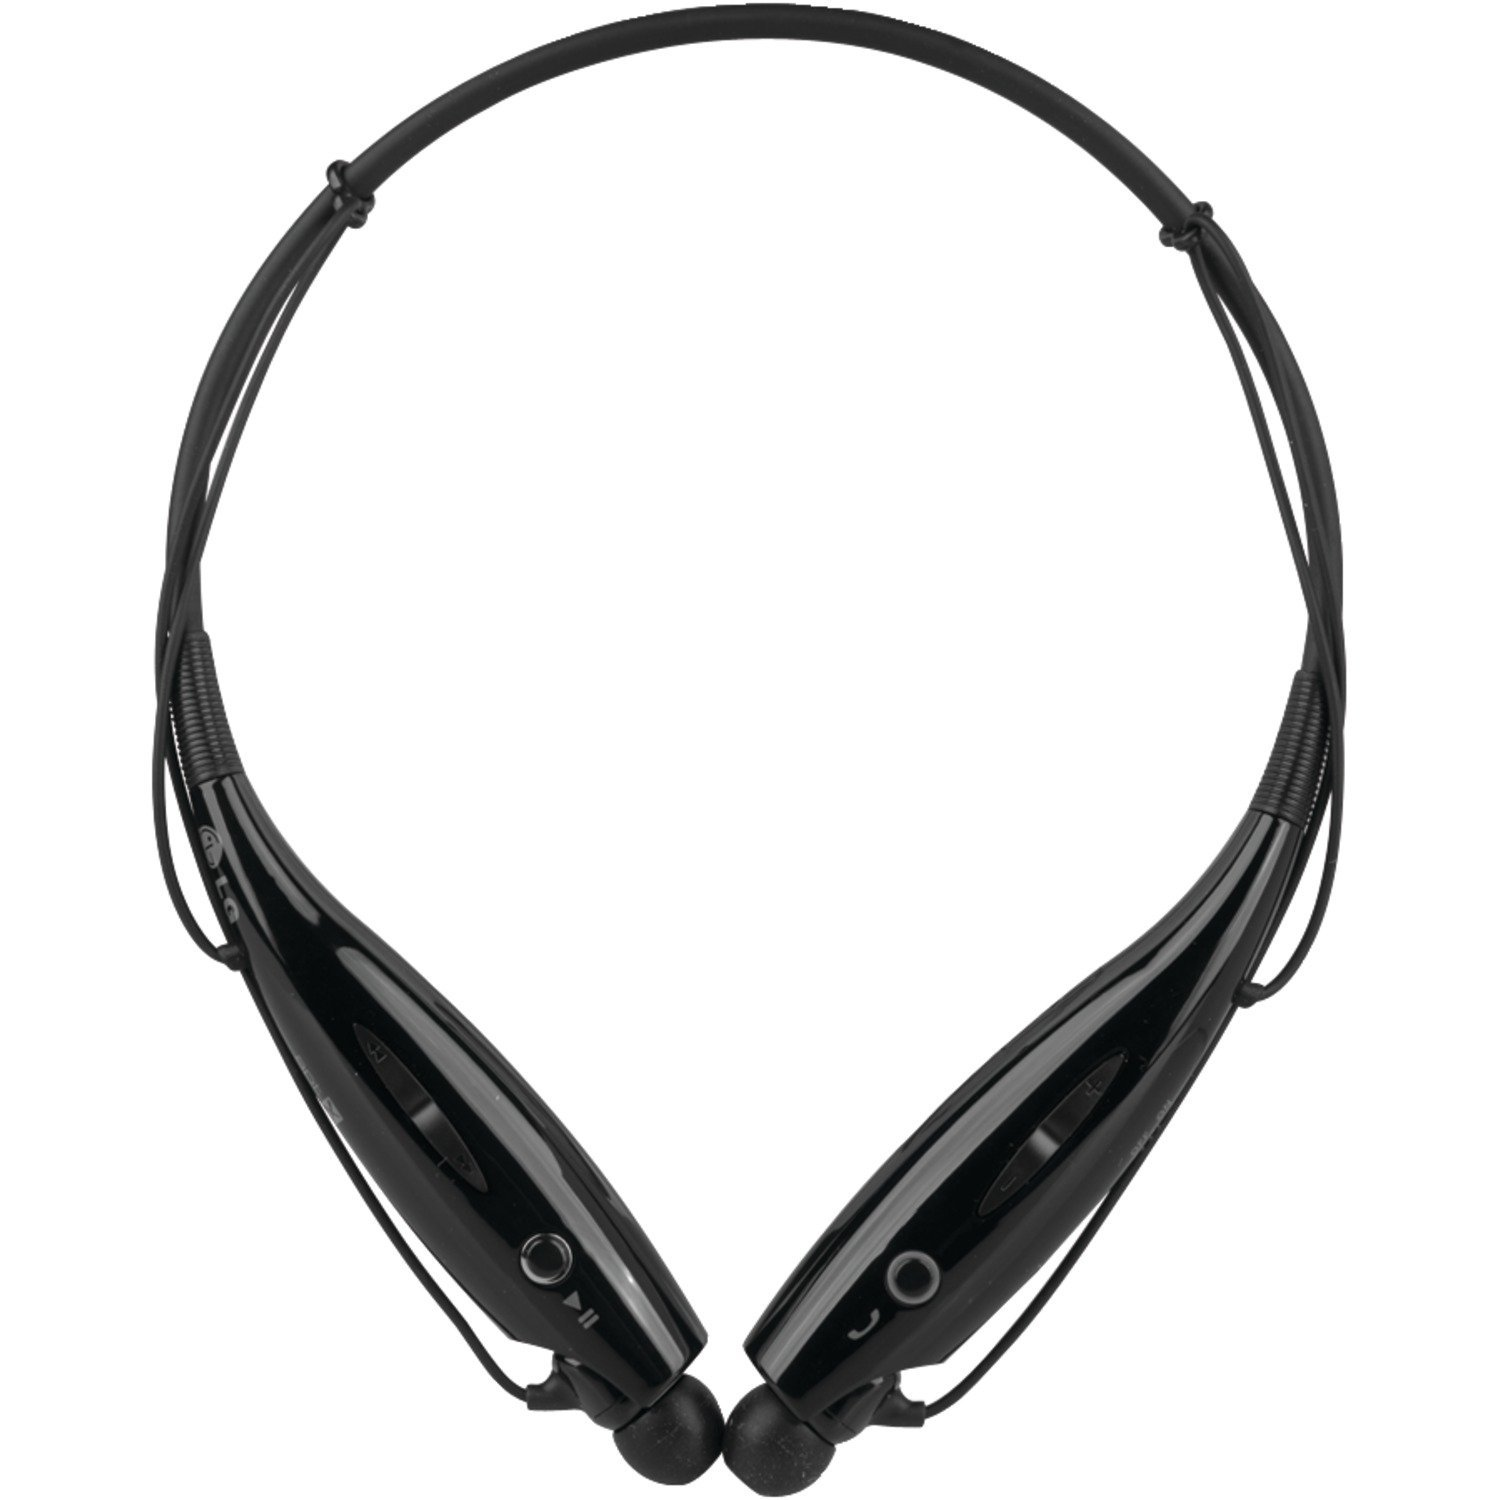 Lg Tone Hbs 730 Bluetooth Headset Reviews Lg Tone Hbs 730 Bluetooth Headset Price Lg Tone Hbs 730 Bluetooth Headset India Service Quality Drivers